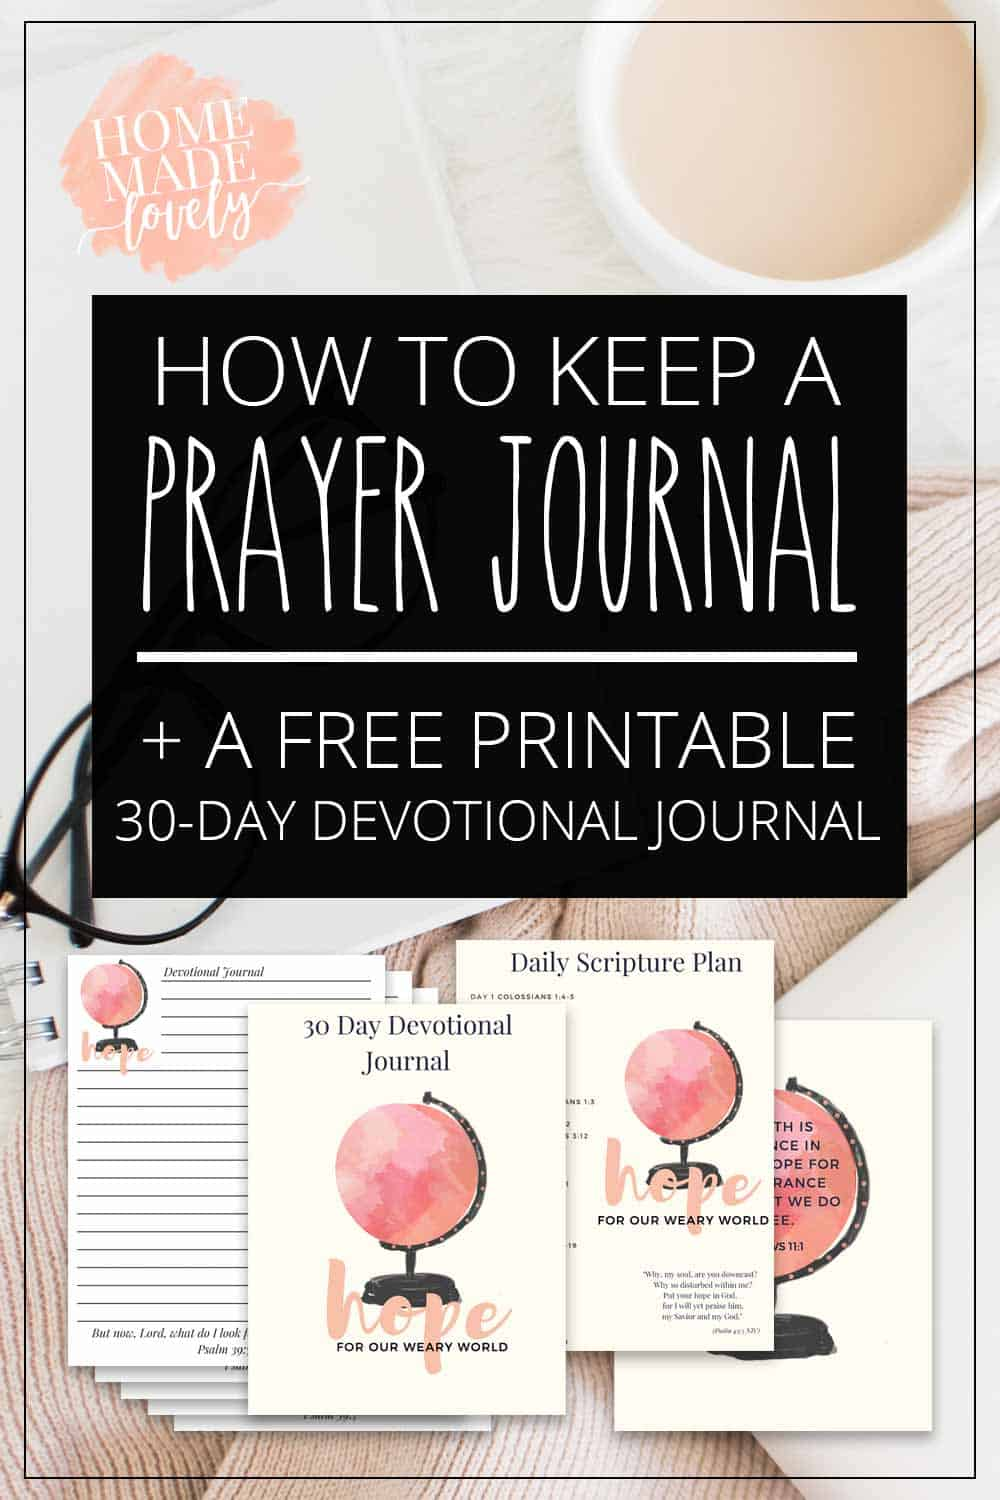 How to Keep a Prayer Journal + a FREE Printable 30-Day